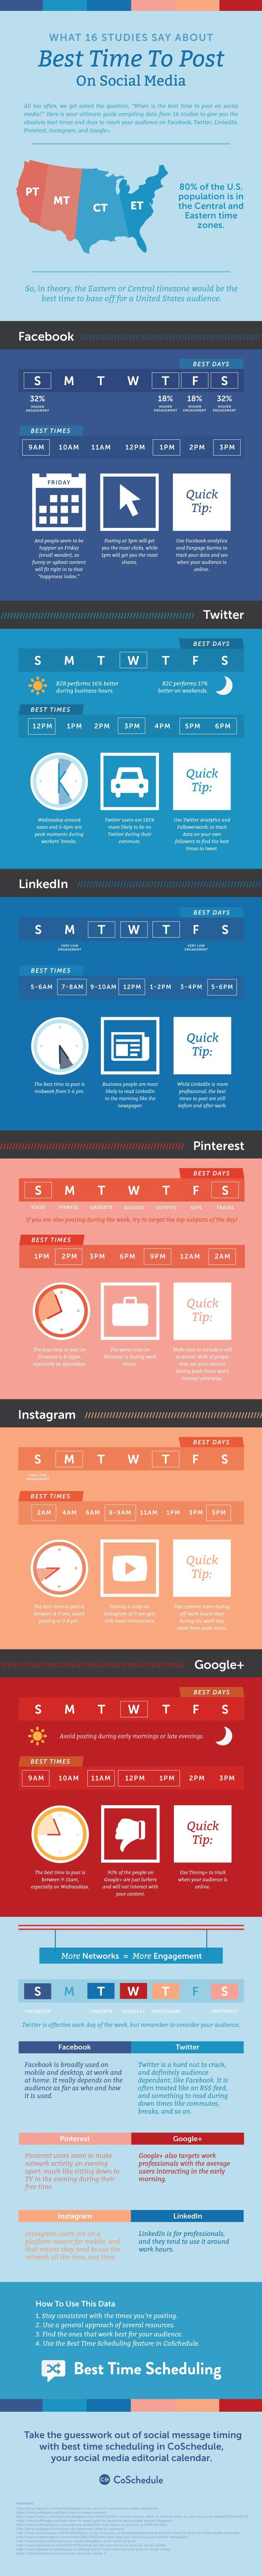 Here Are The Best Times To Post On Each Social Media Network #infographic #twitter #facebook